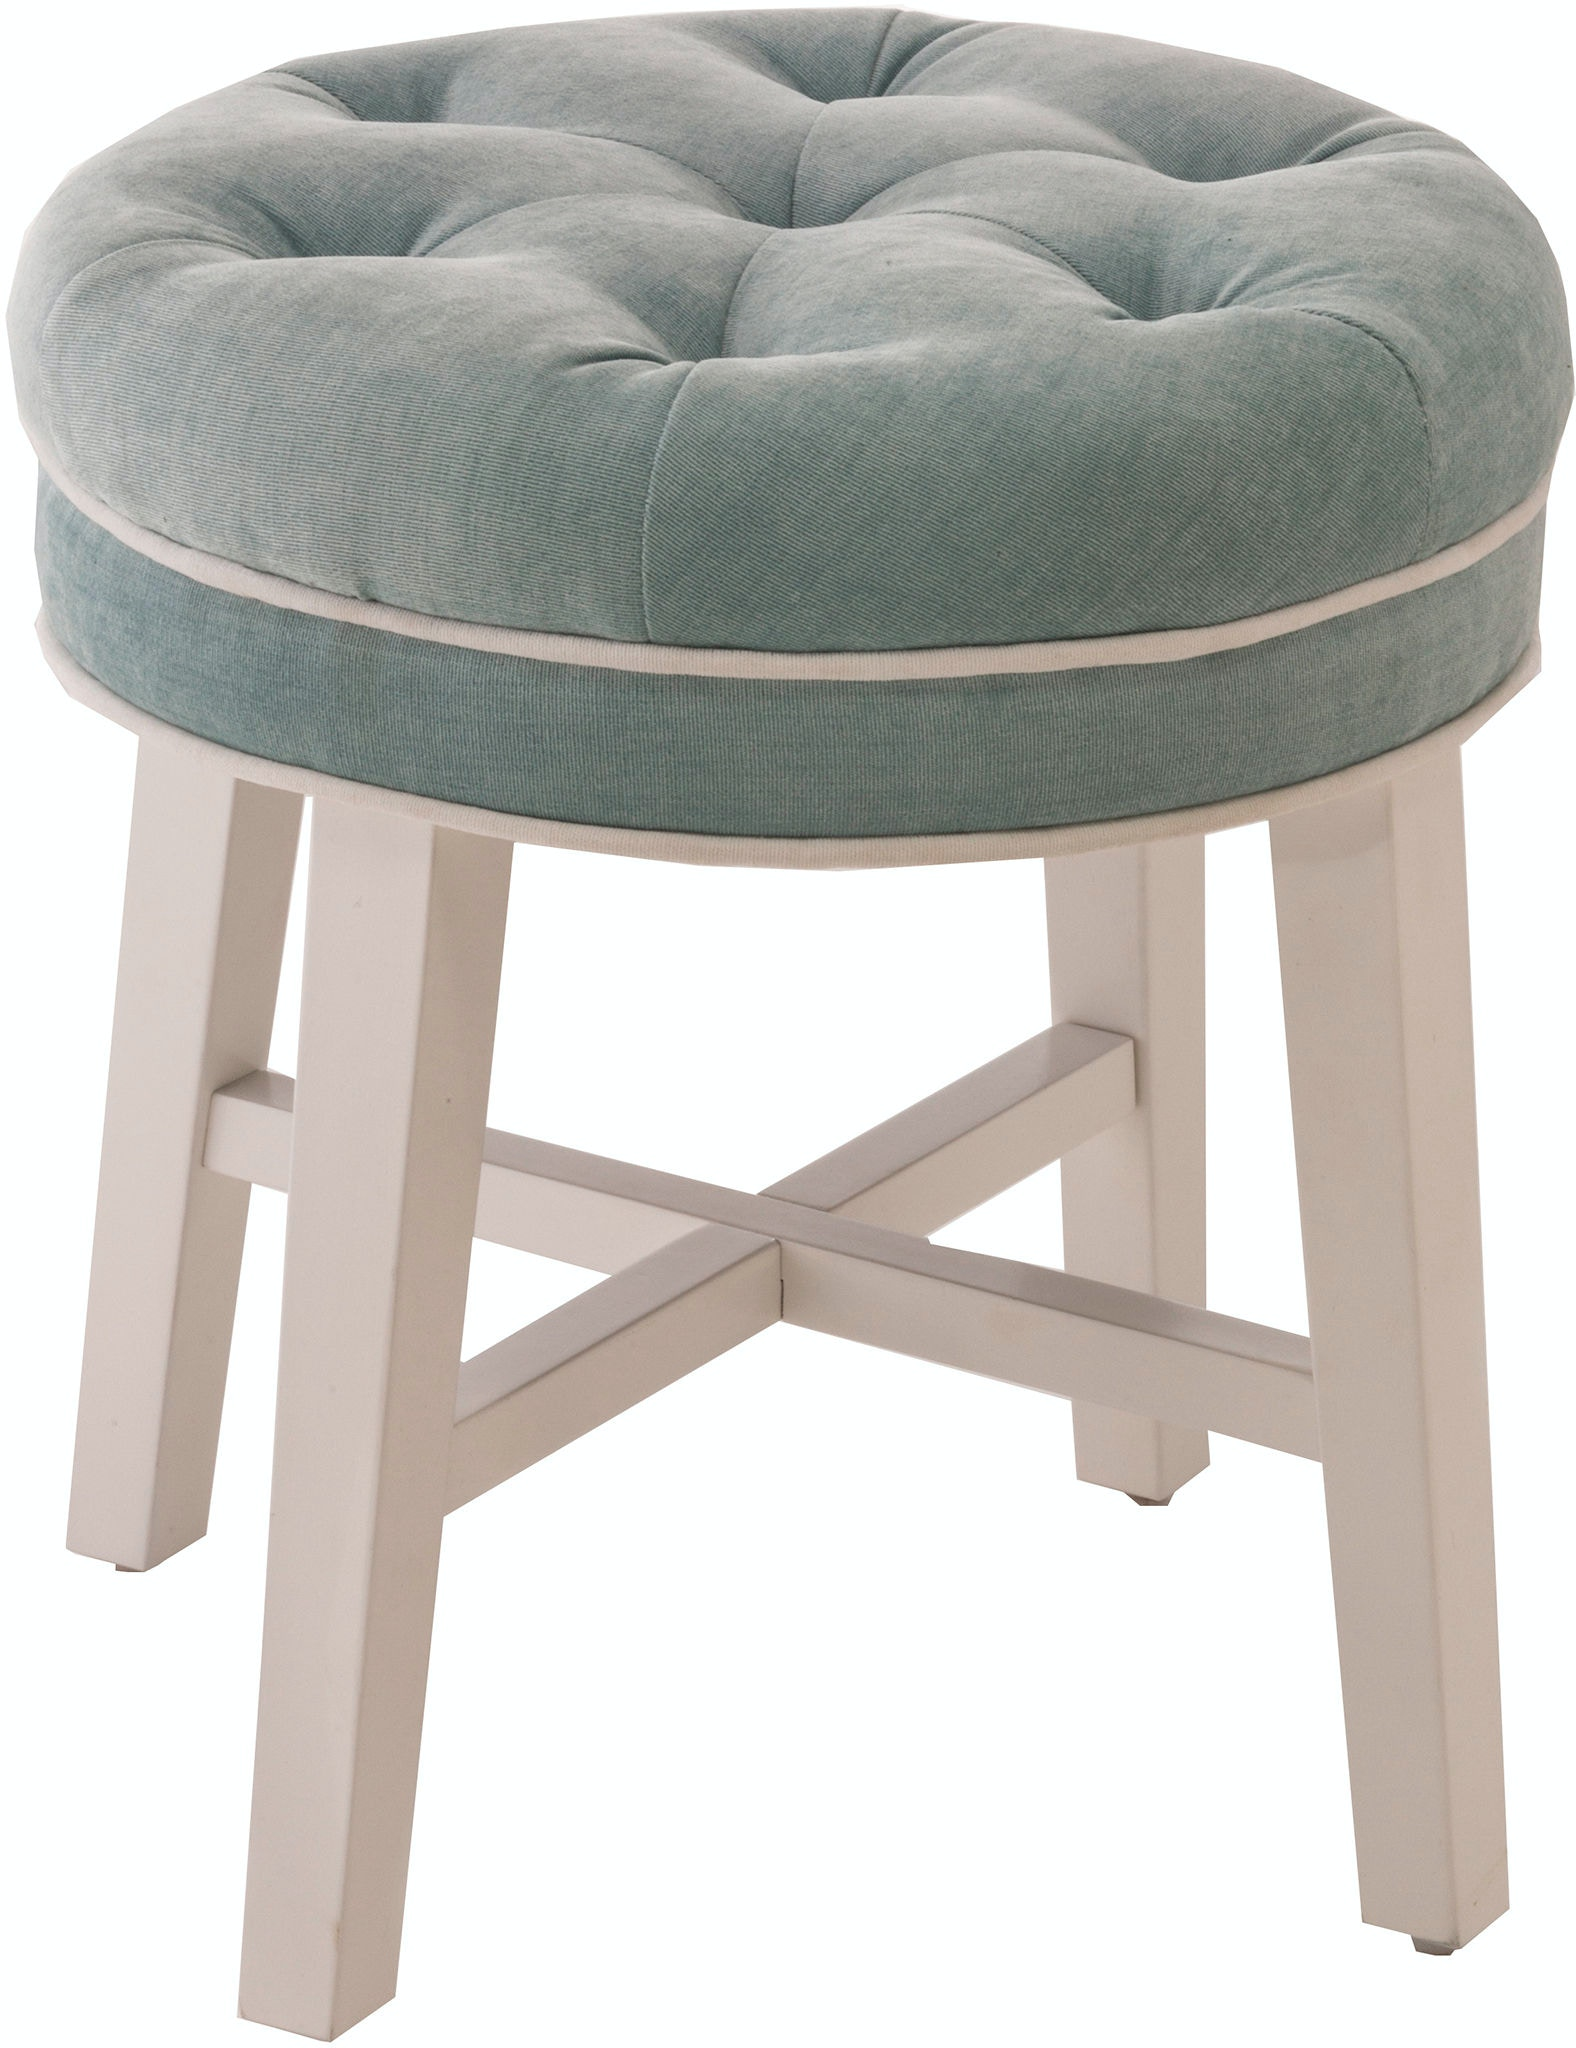 Hillsdale Furniture Bedroom Sophia Vanity Stool With Spa